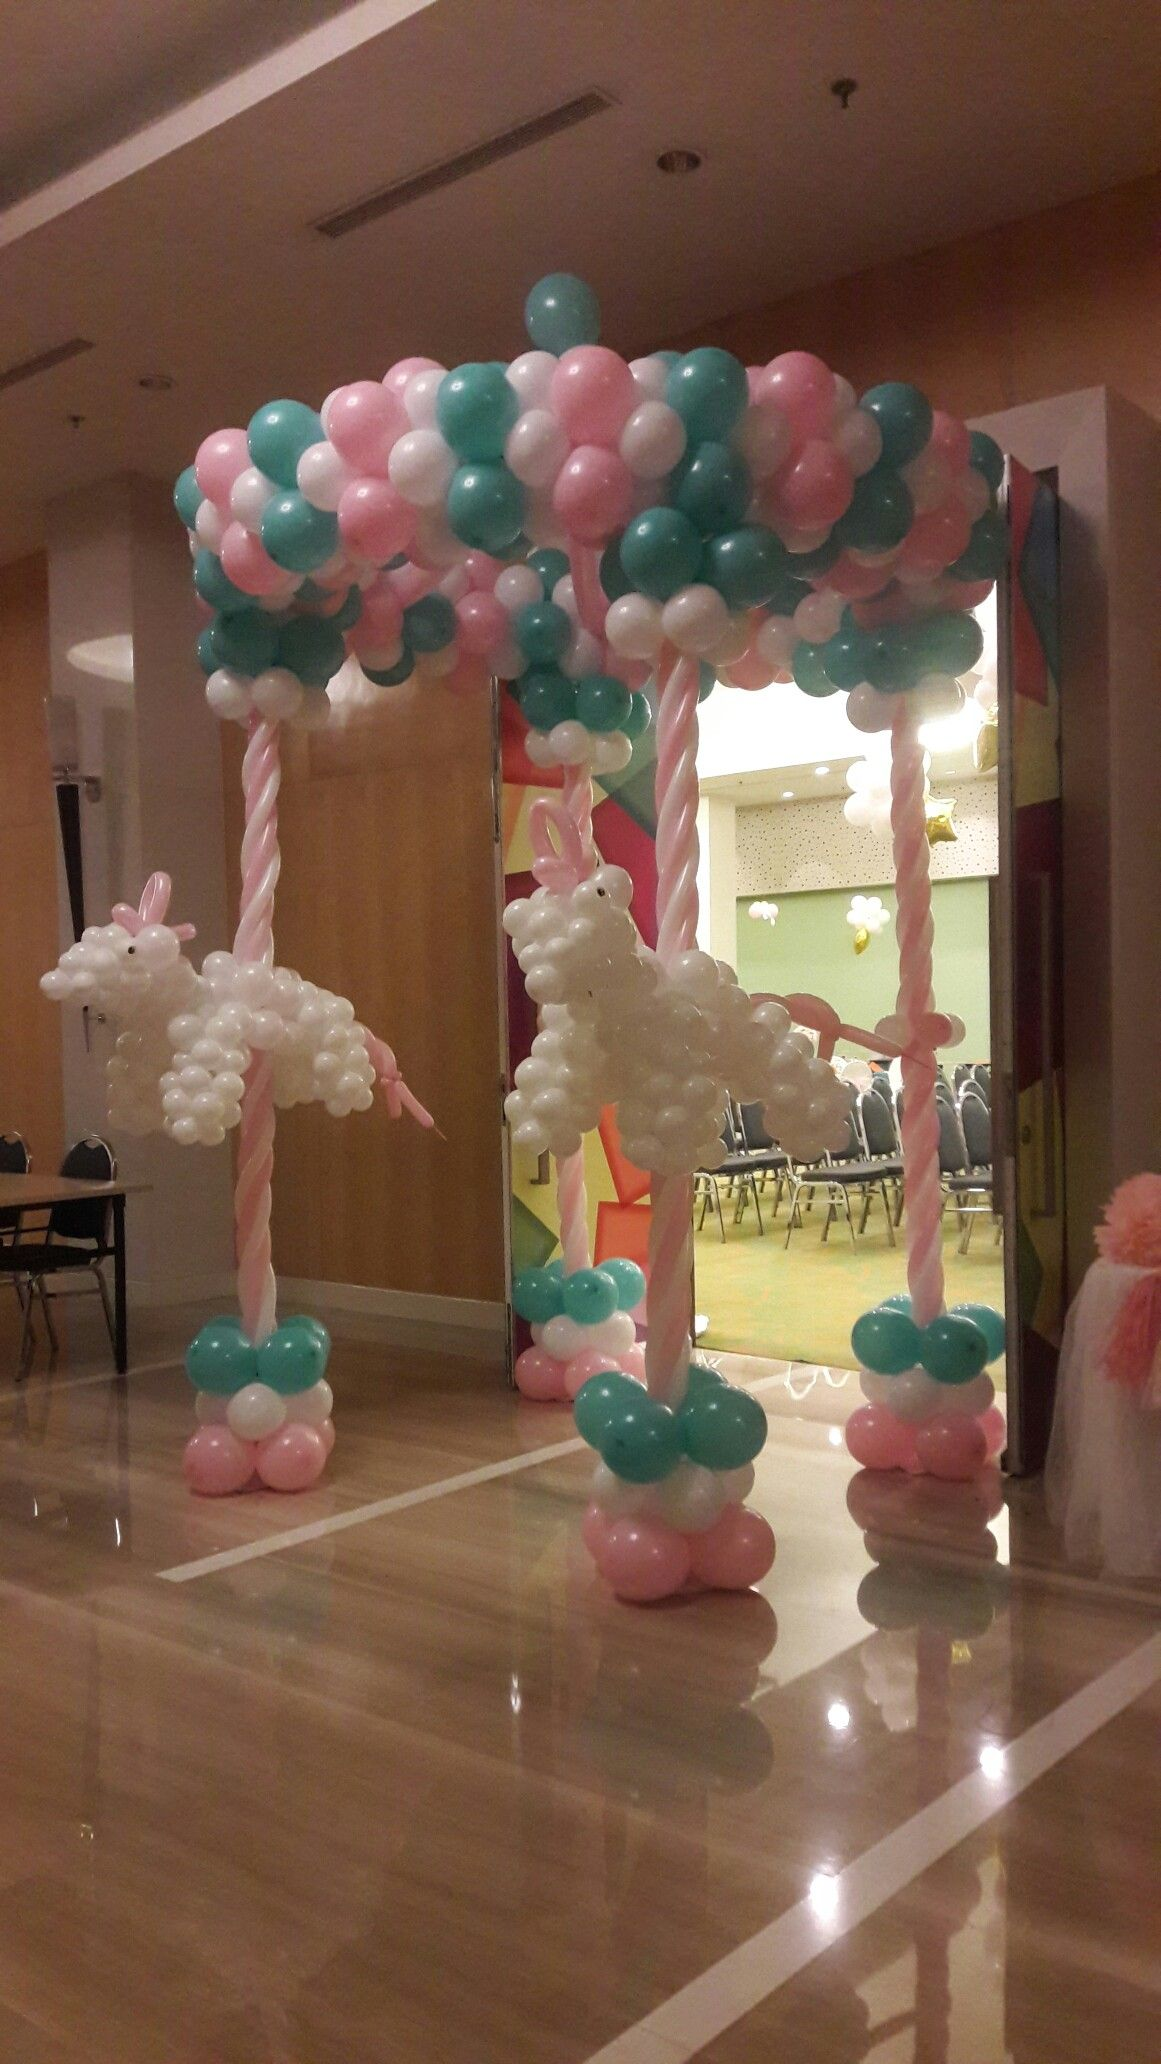 Princesa Salon Carousel Gate Arreglos D Salon D Fiesta Pinterest